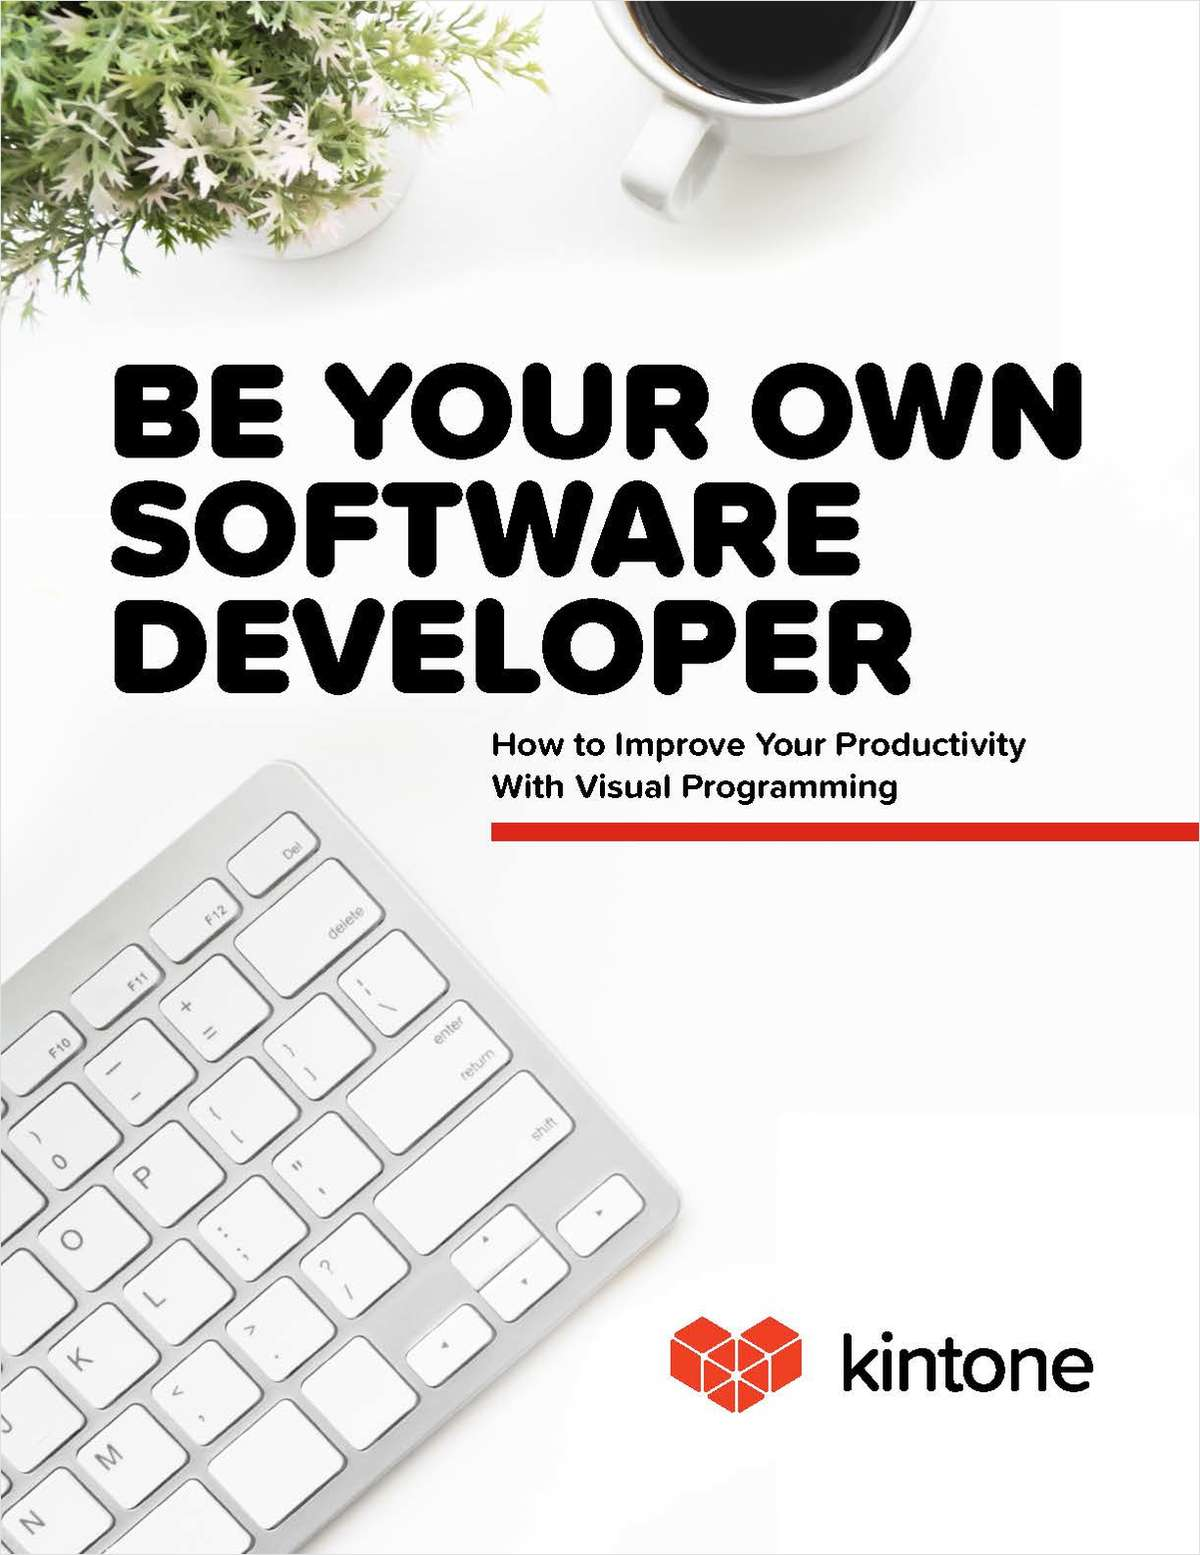 Be Your Own Software Developer